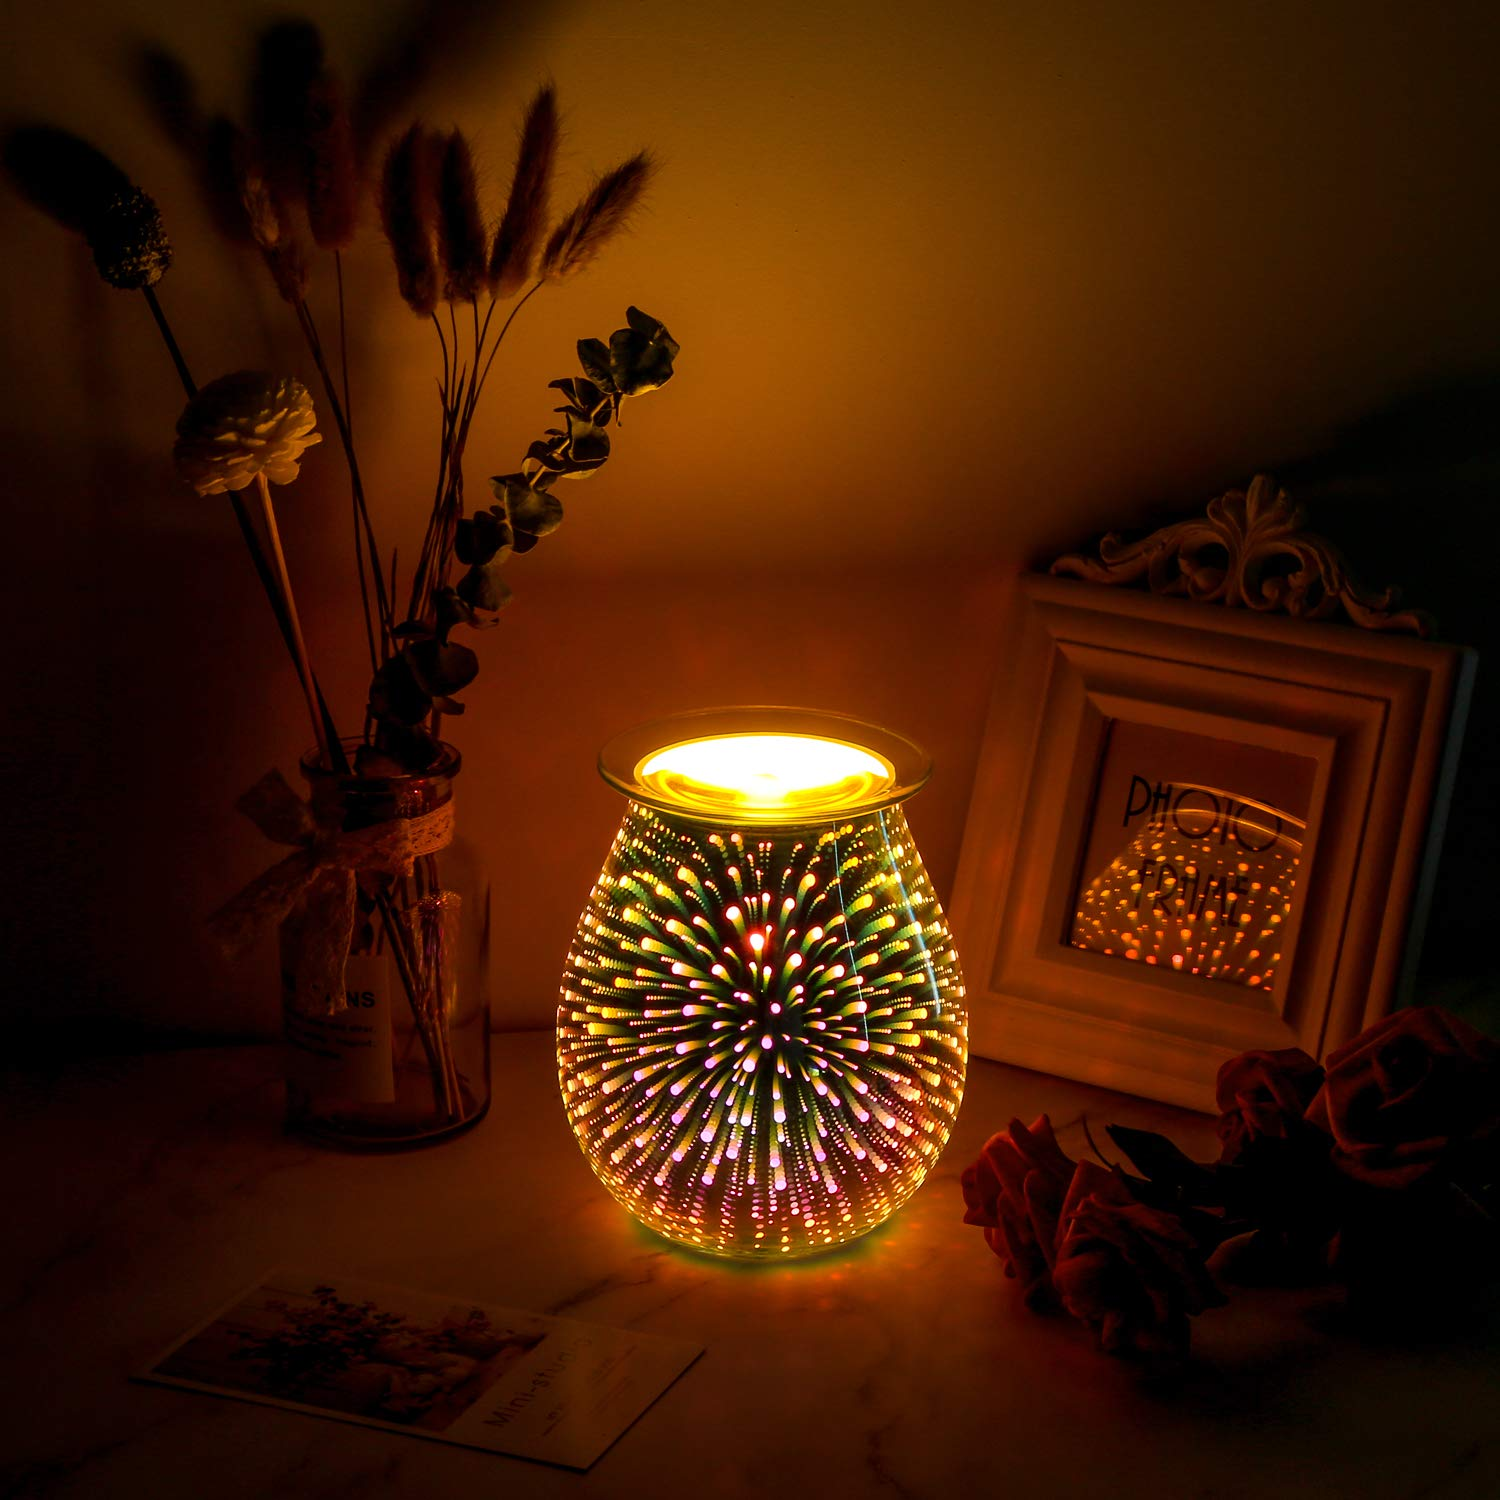 Electric Oil Warmer COOSA 3D Effect Starburst Fireworks Glass Wax Tart Burner Fragrance Candle Warmer Incense Oil Night Light Aroma Decorative Lamp for Gifts, Decor for Home Office by COOSA (Image #2)